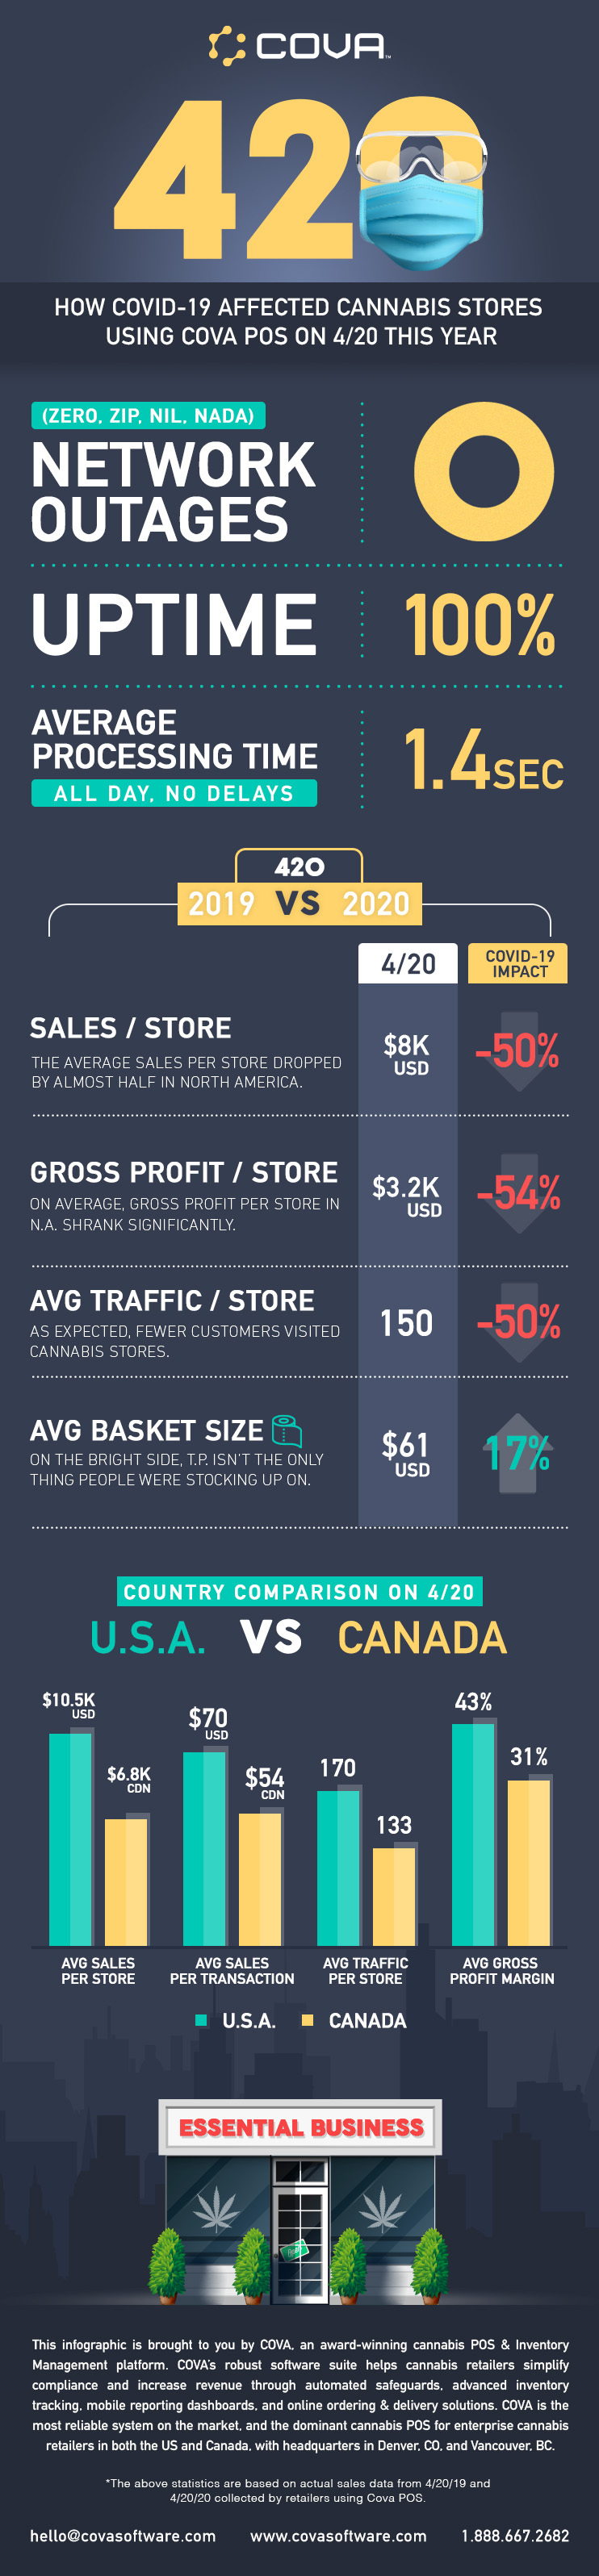 Infographic: 420, 2020 Cannabis Store Sales Numbers From Cova POS